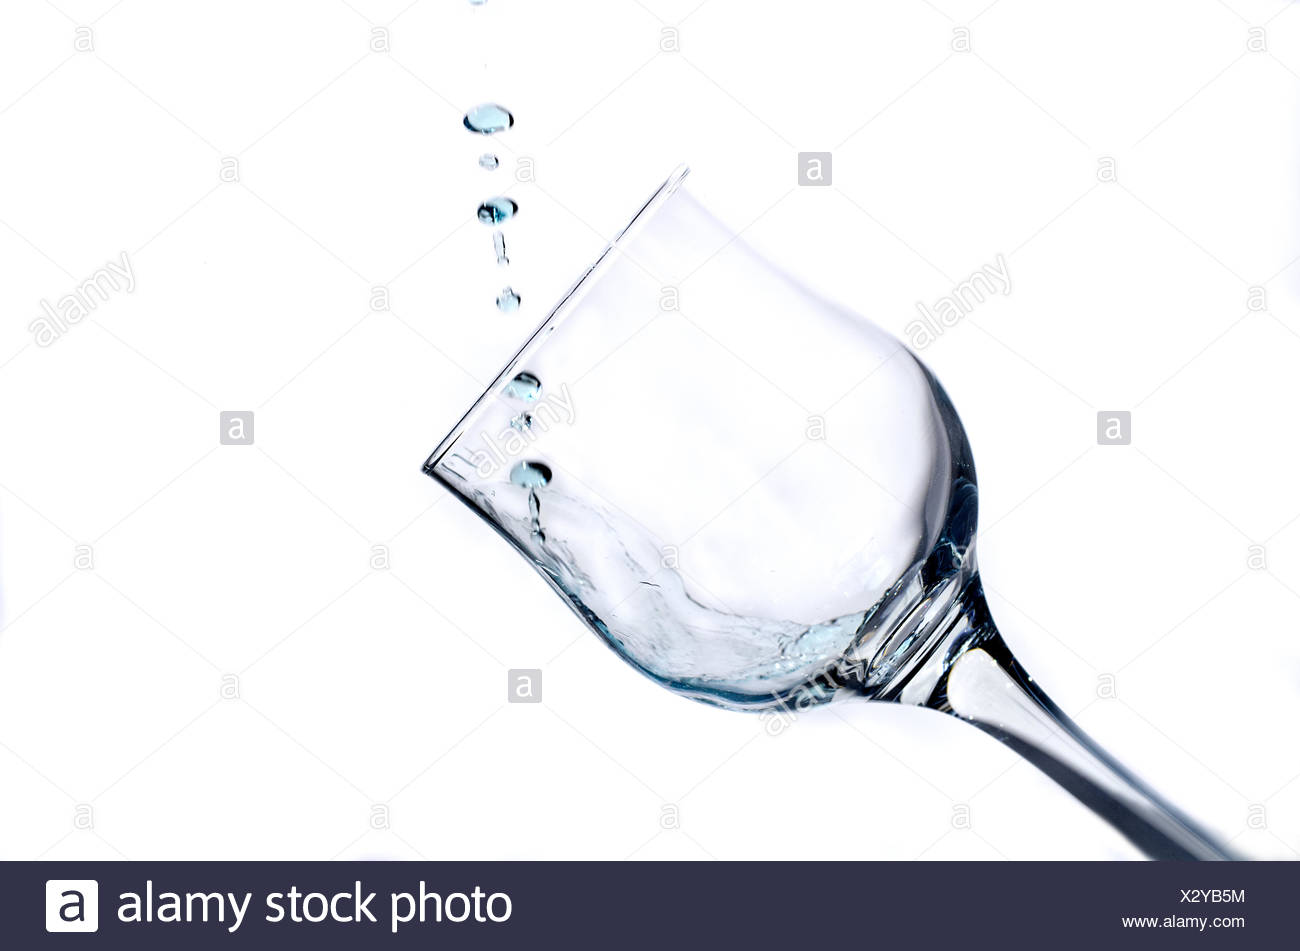 The trickle of fluid fills the glass glass - Stock Image